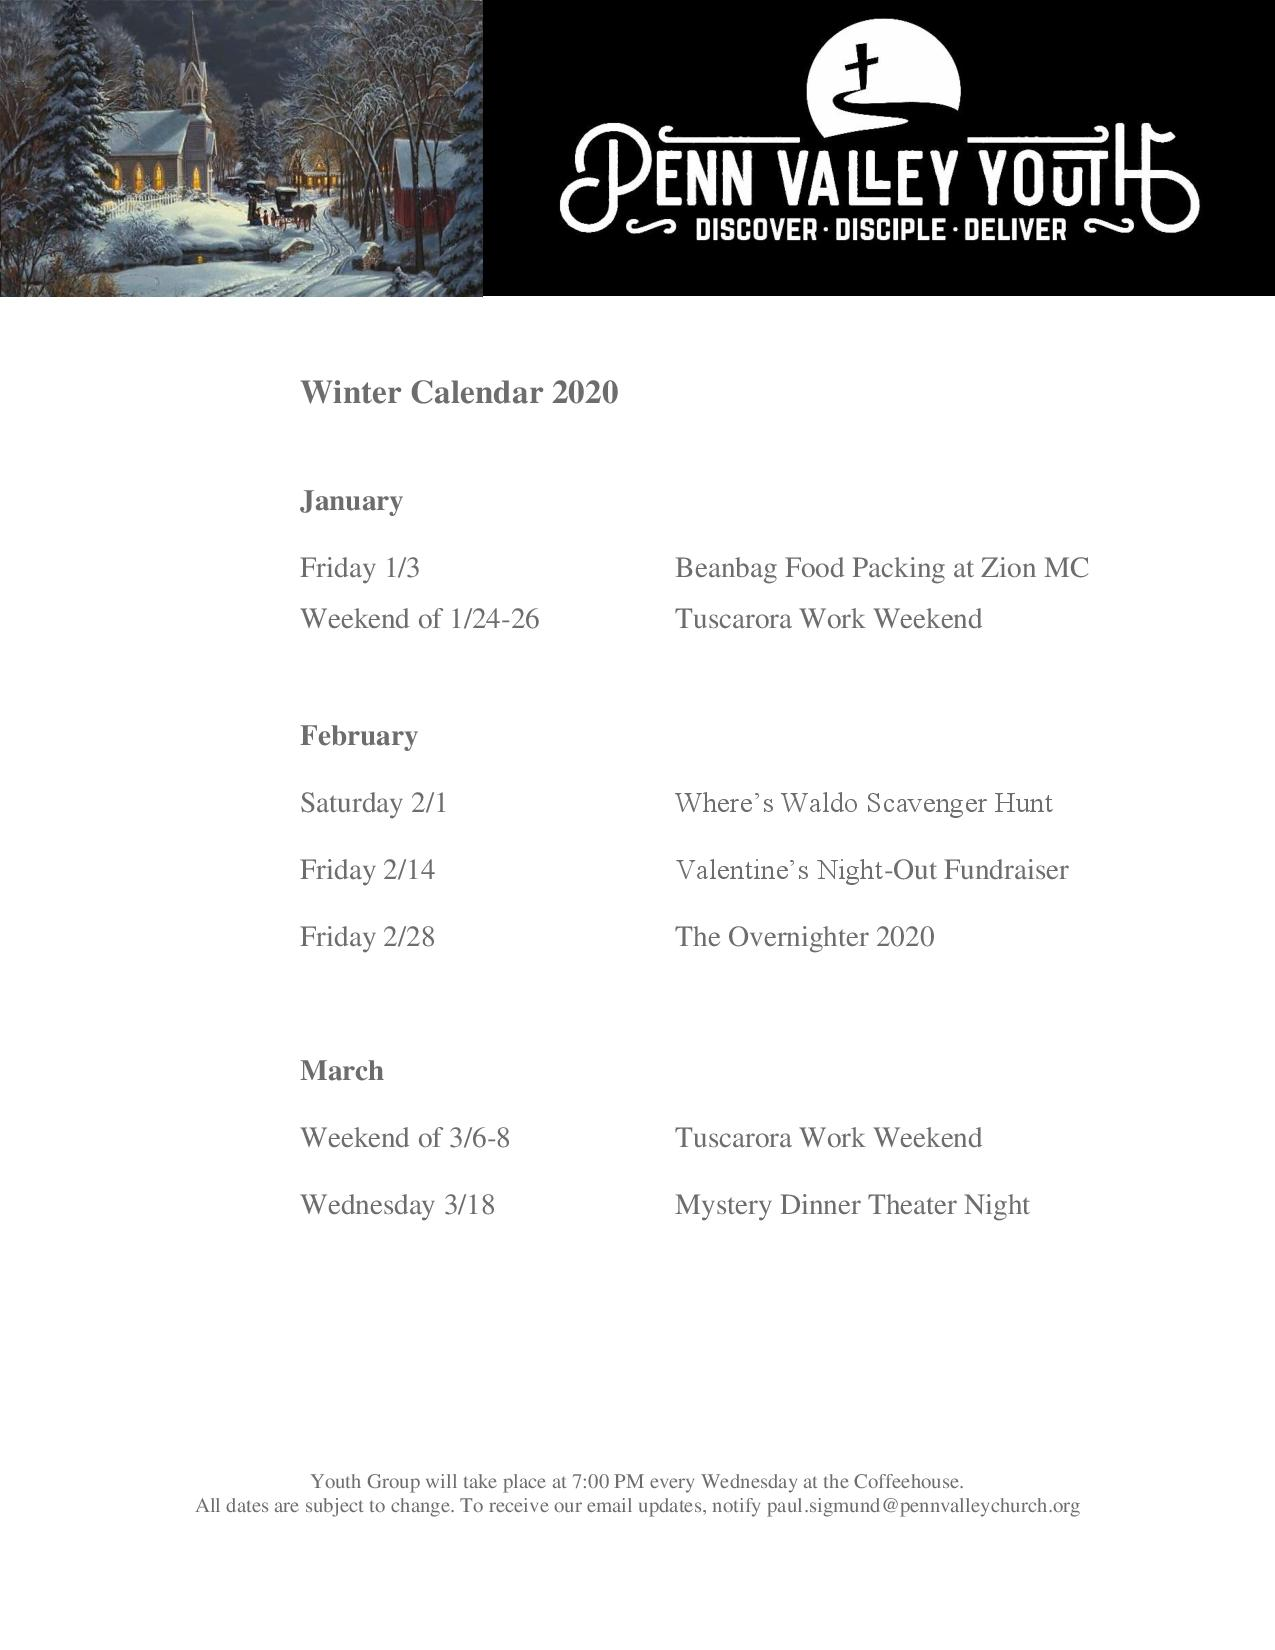 PVY Winter 2020 Schedule_Updated-page-001